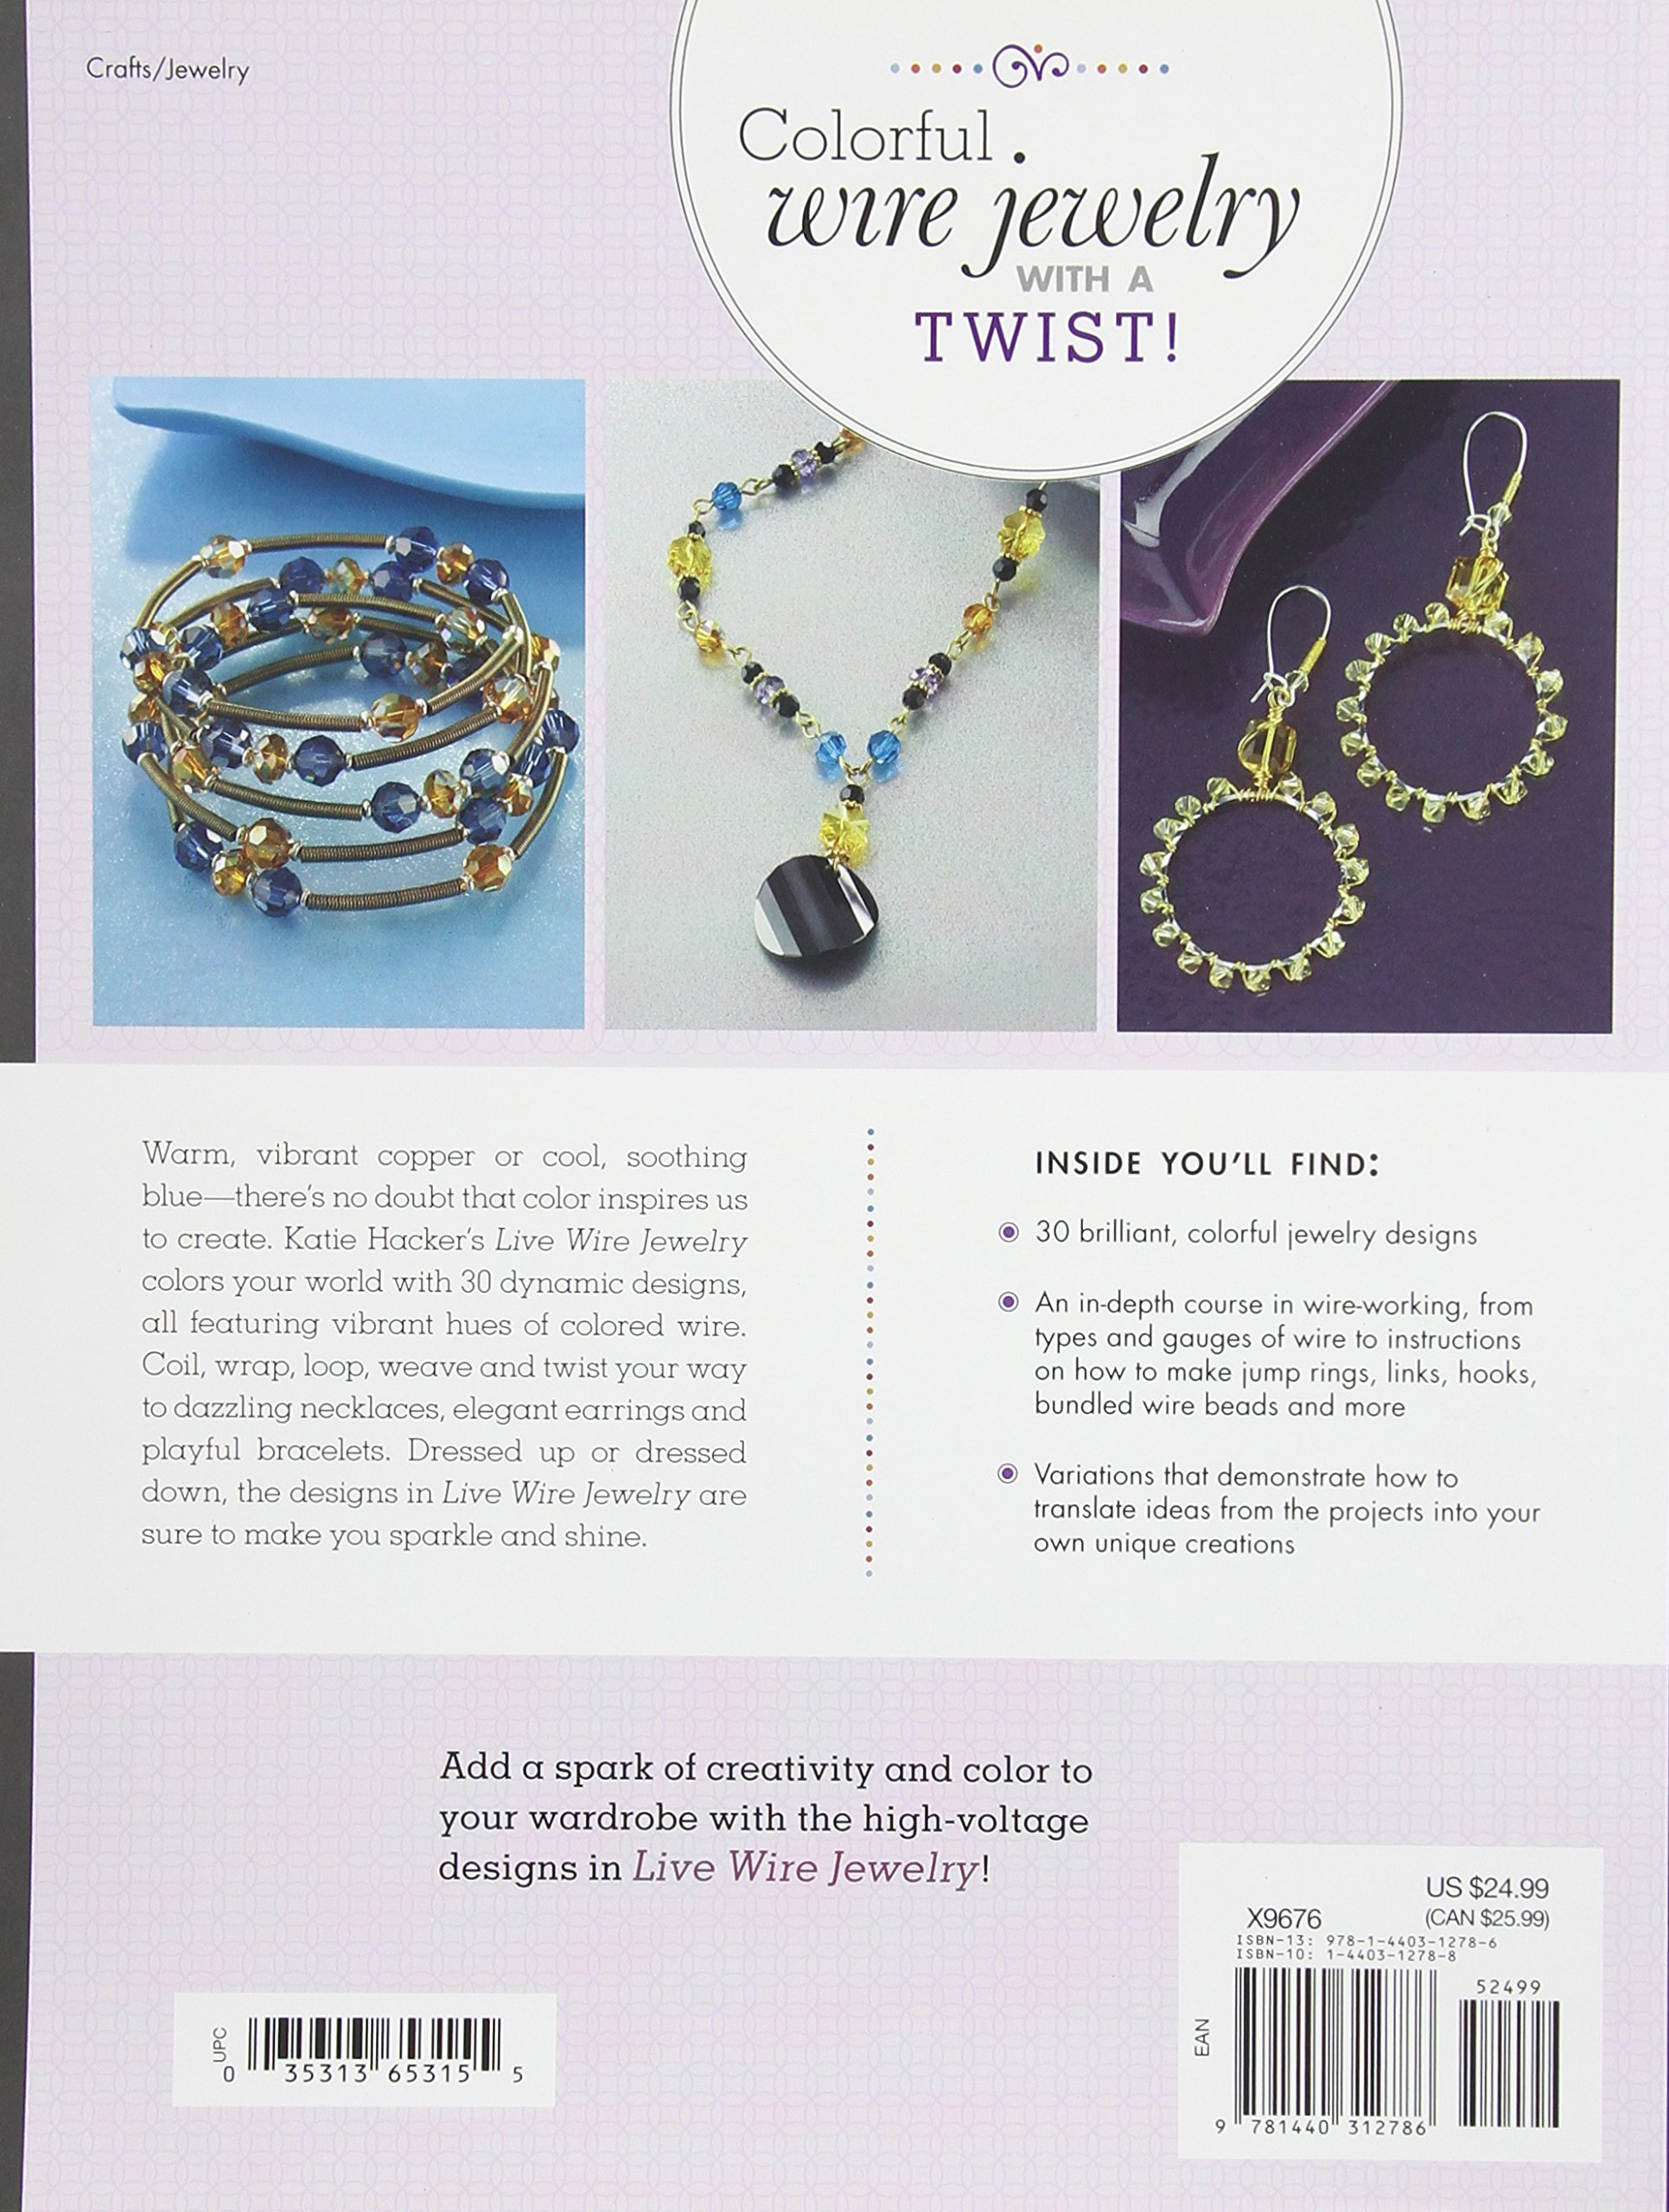 Live Wire Jewelry: Make Colorful Designs That Shine: Katie Hacker ...